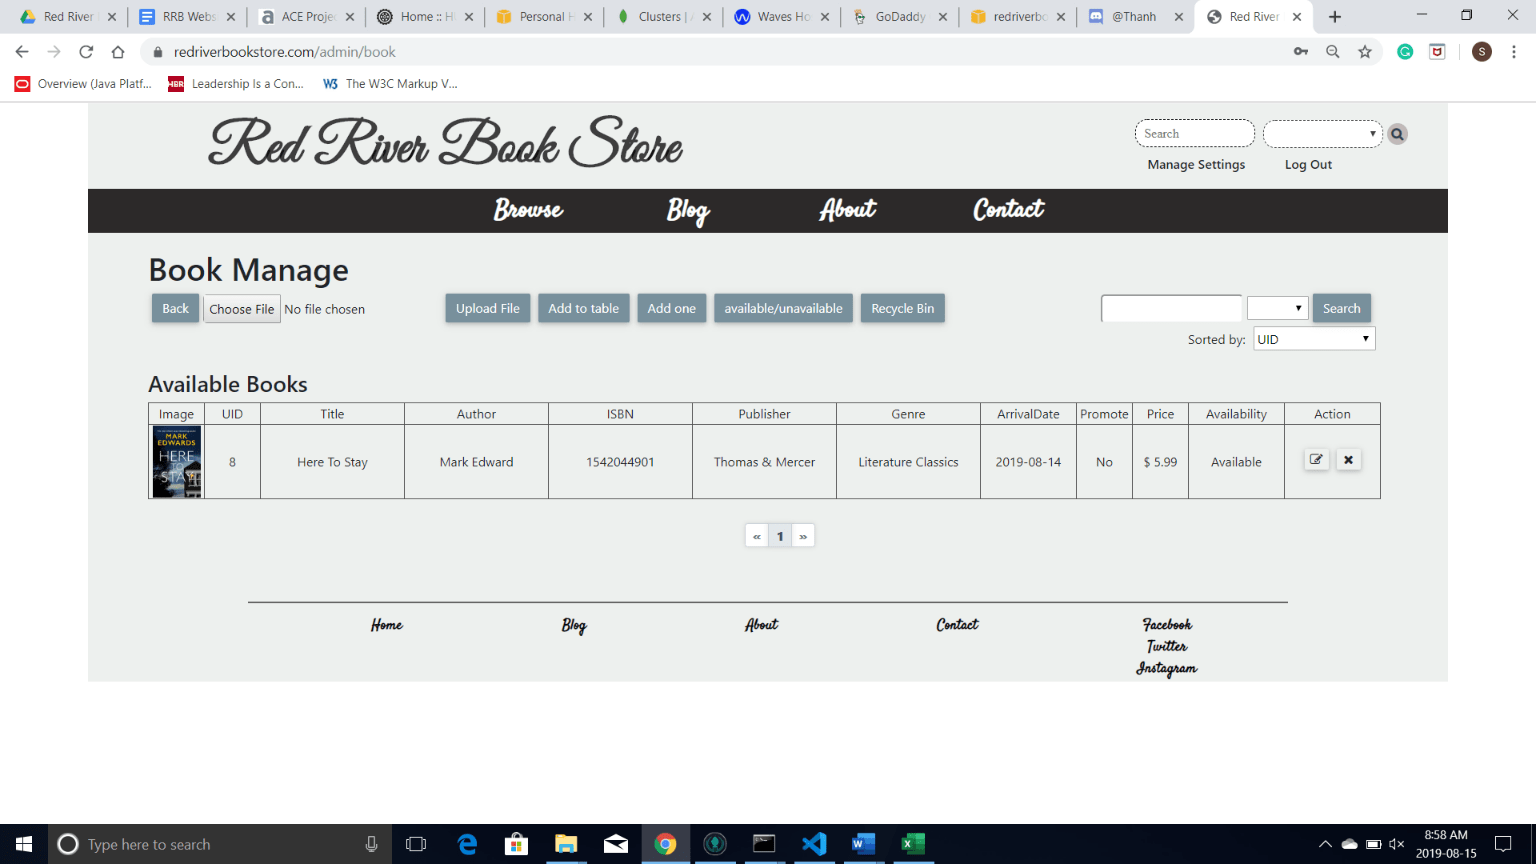 Book Manage page